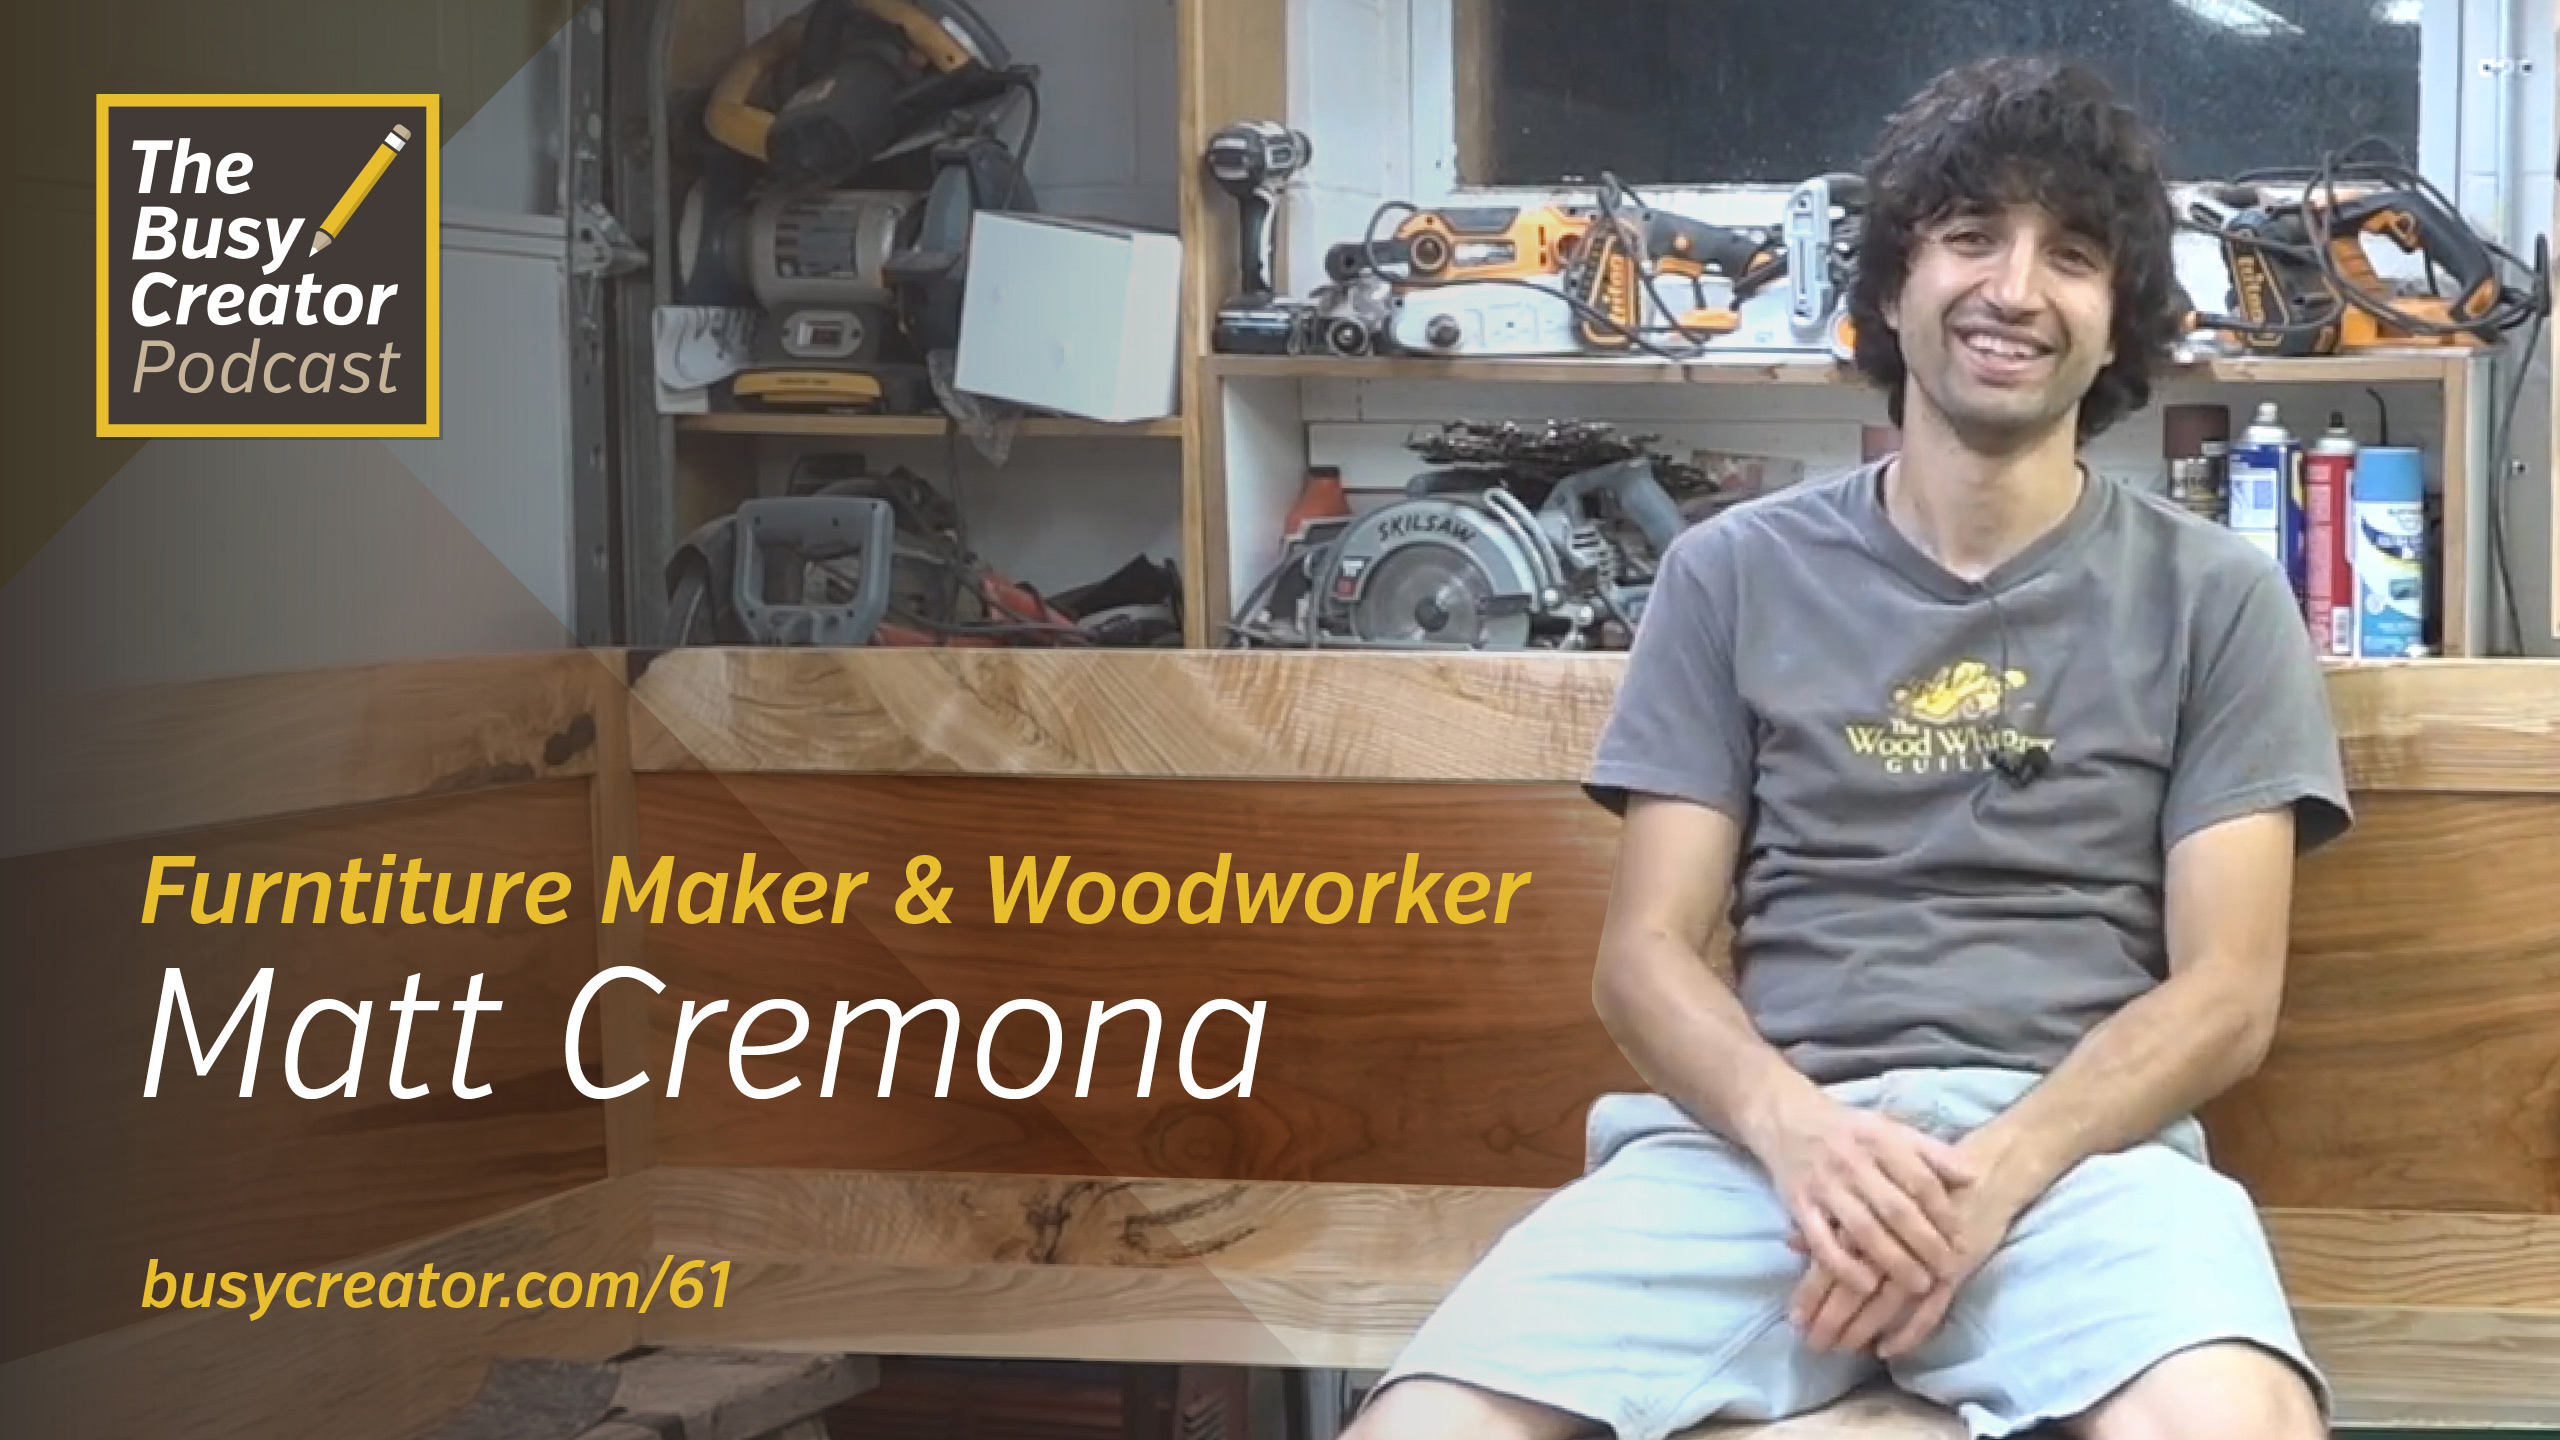 Woodworker & Furniture Maker Matt Cremona Discusses Self-Teaching and Making a Solo Video Show